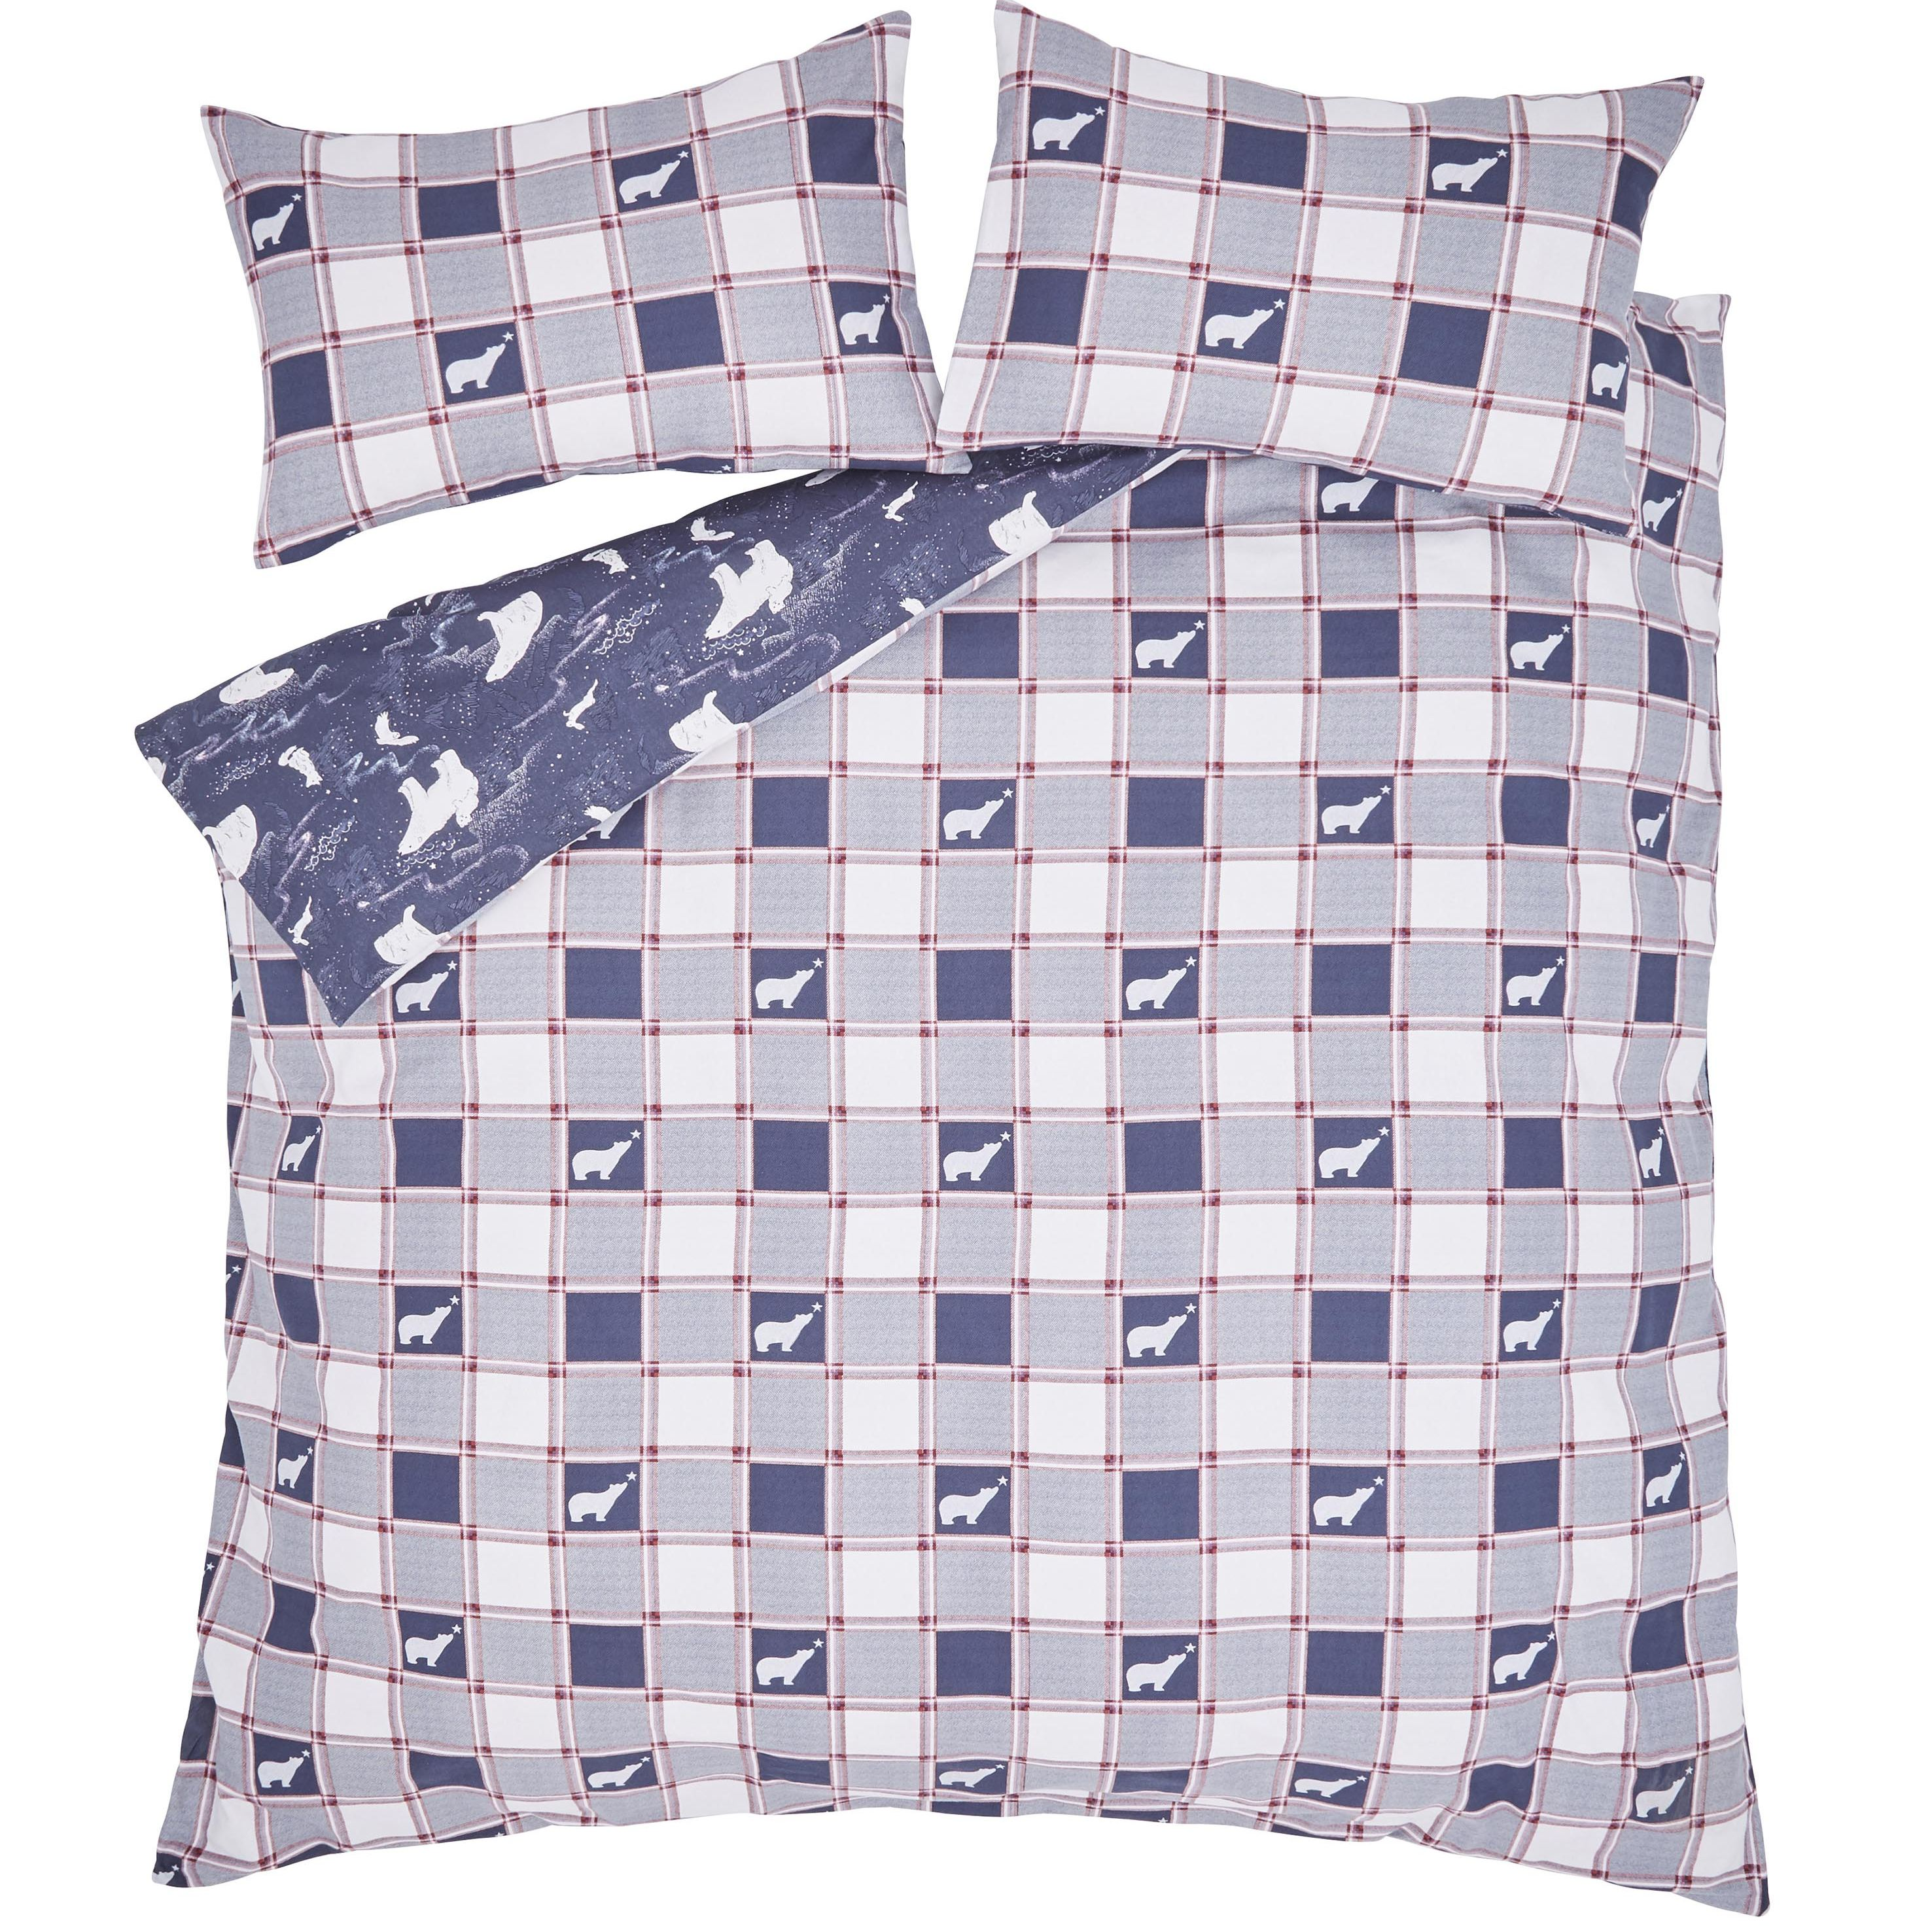 XMAS POLAR BEAR KING QUILT SET - NAVY